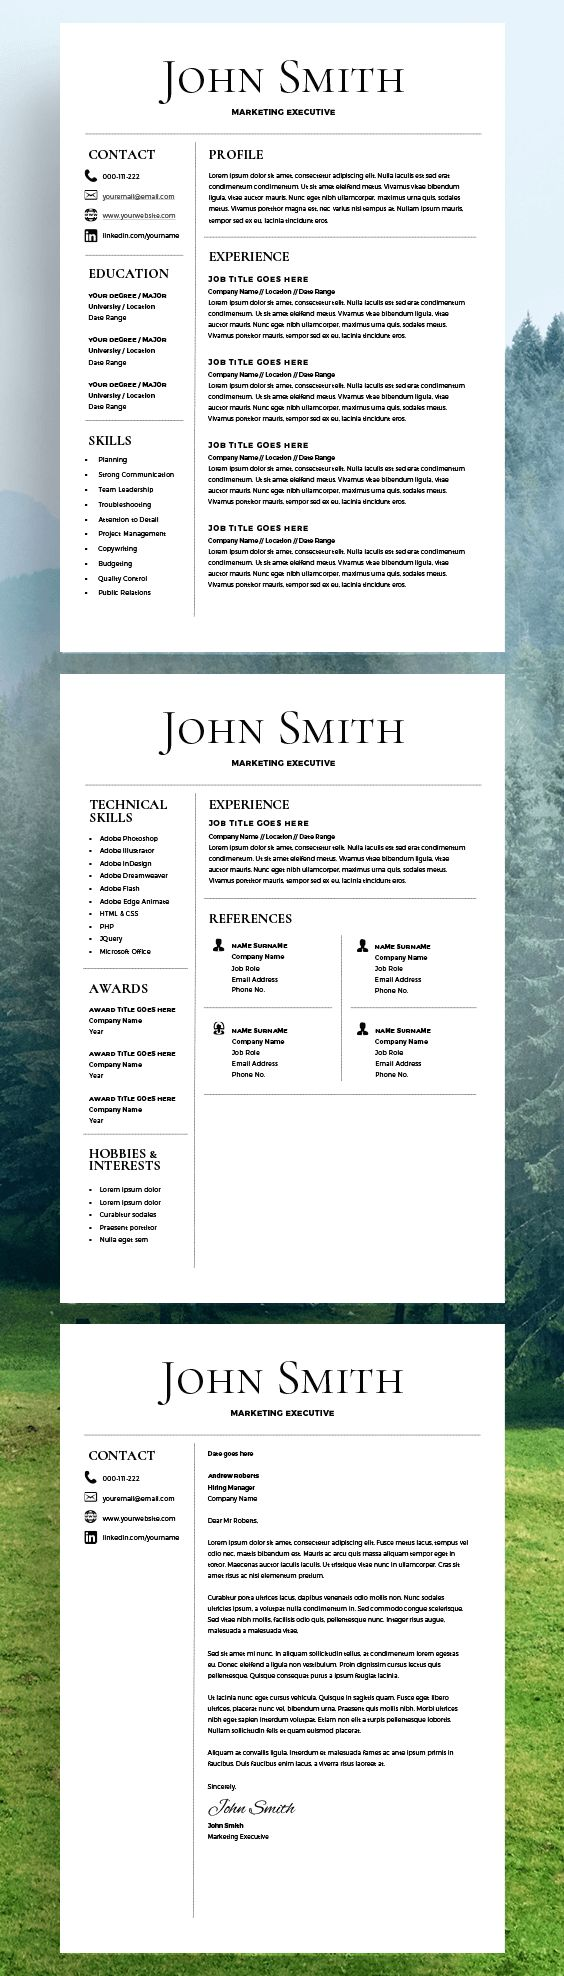 resume template cv template free cover letter ms word on mac pc - Resume Templates For Mac Word